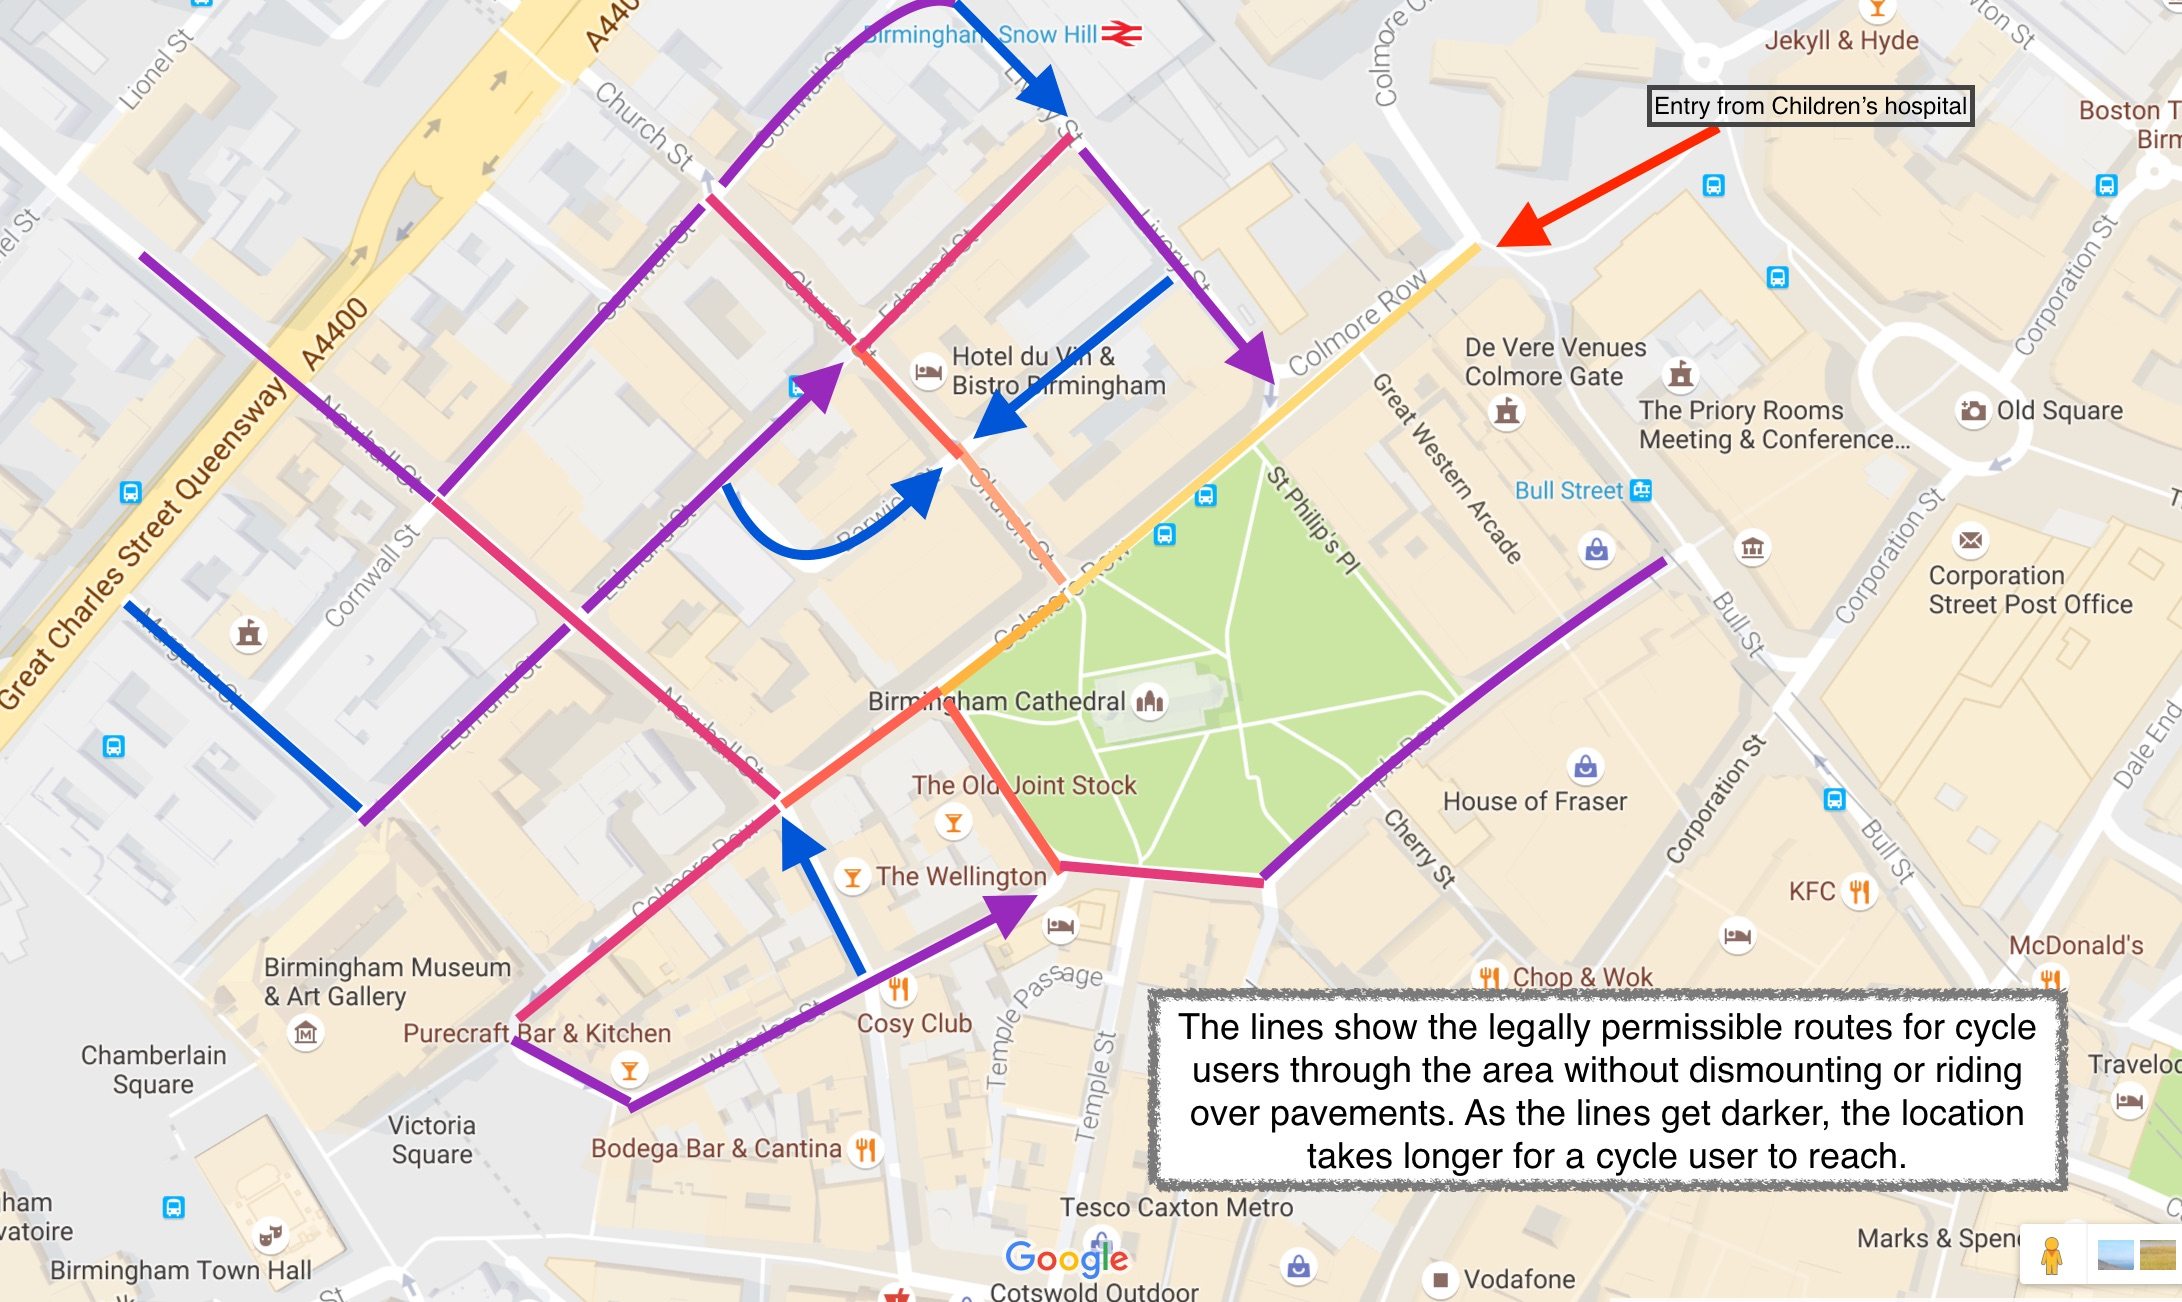 Cycle routes when approaching Colmore Row from the Children's Hospital